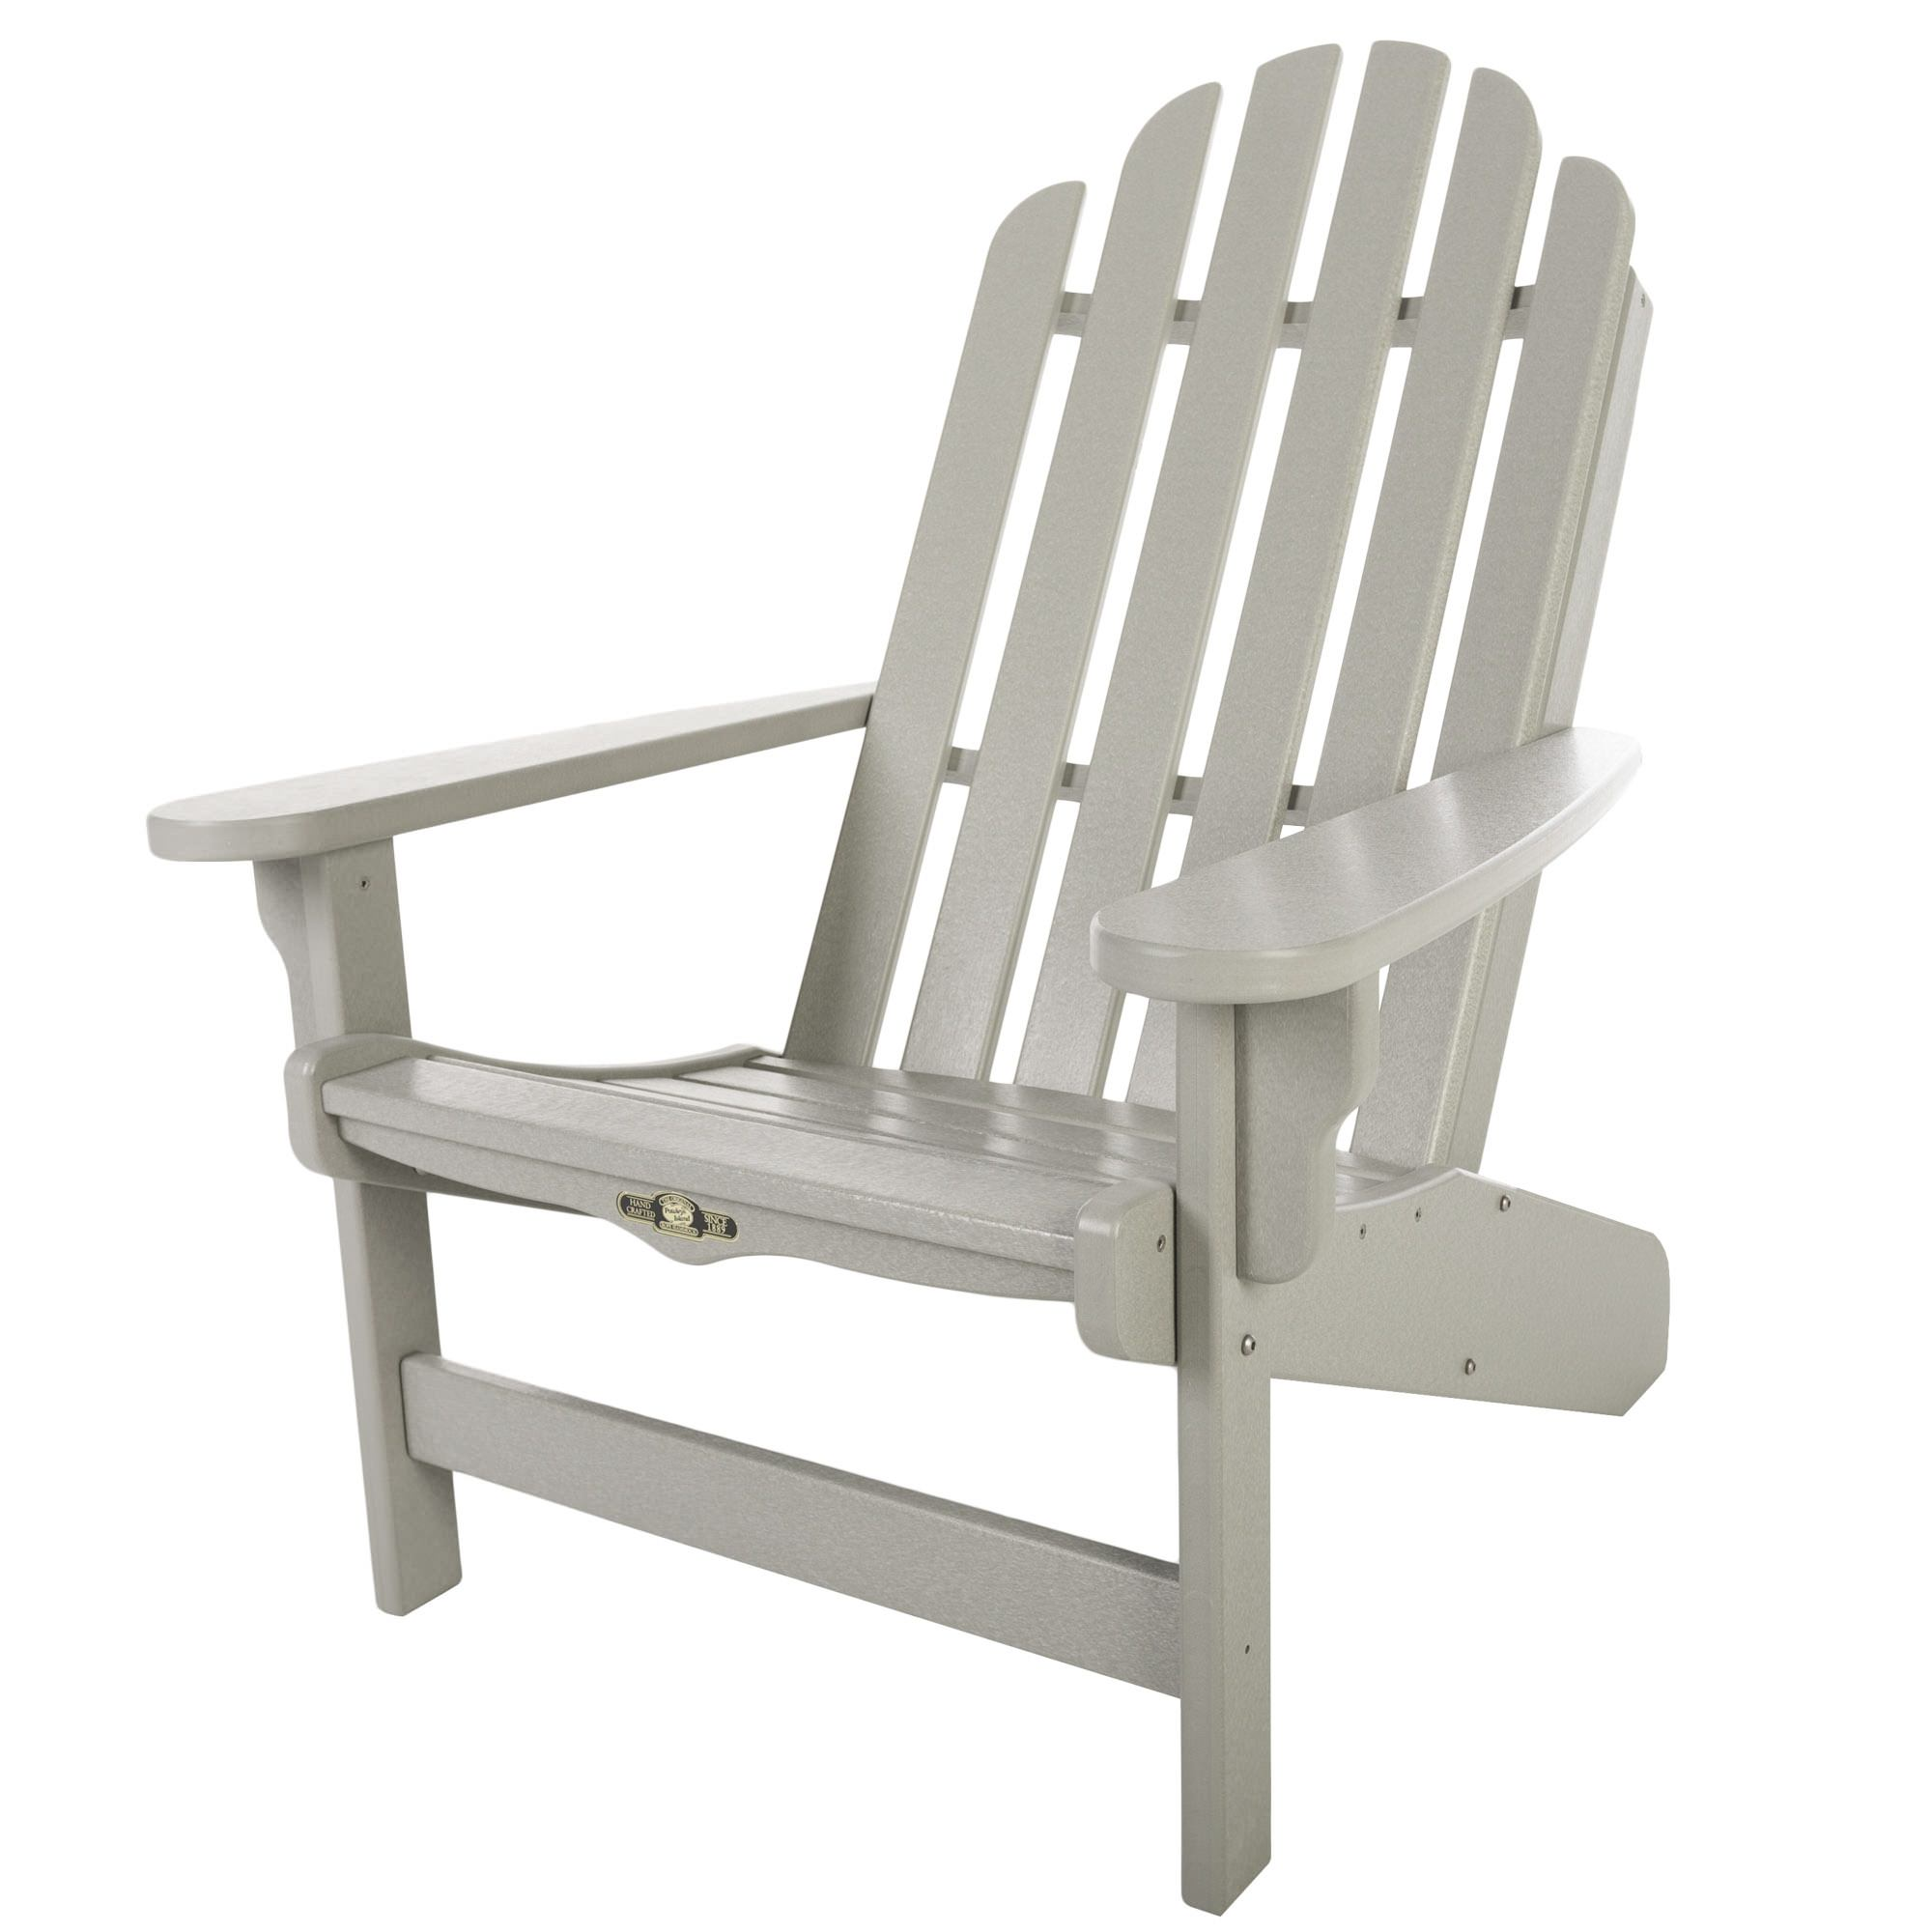 ... Essentials Adirondack Chair ...  sc 1 st  Pawleys Island Hammocks & Shop Durawood Essentials Adirondack Chairs on Sale